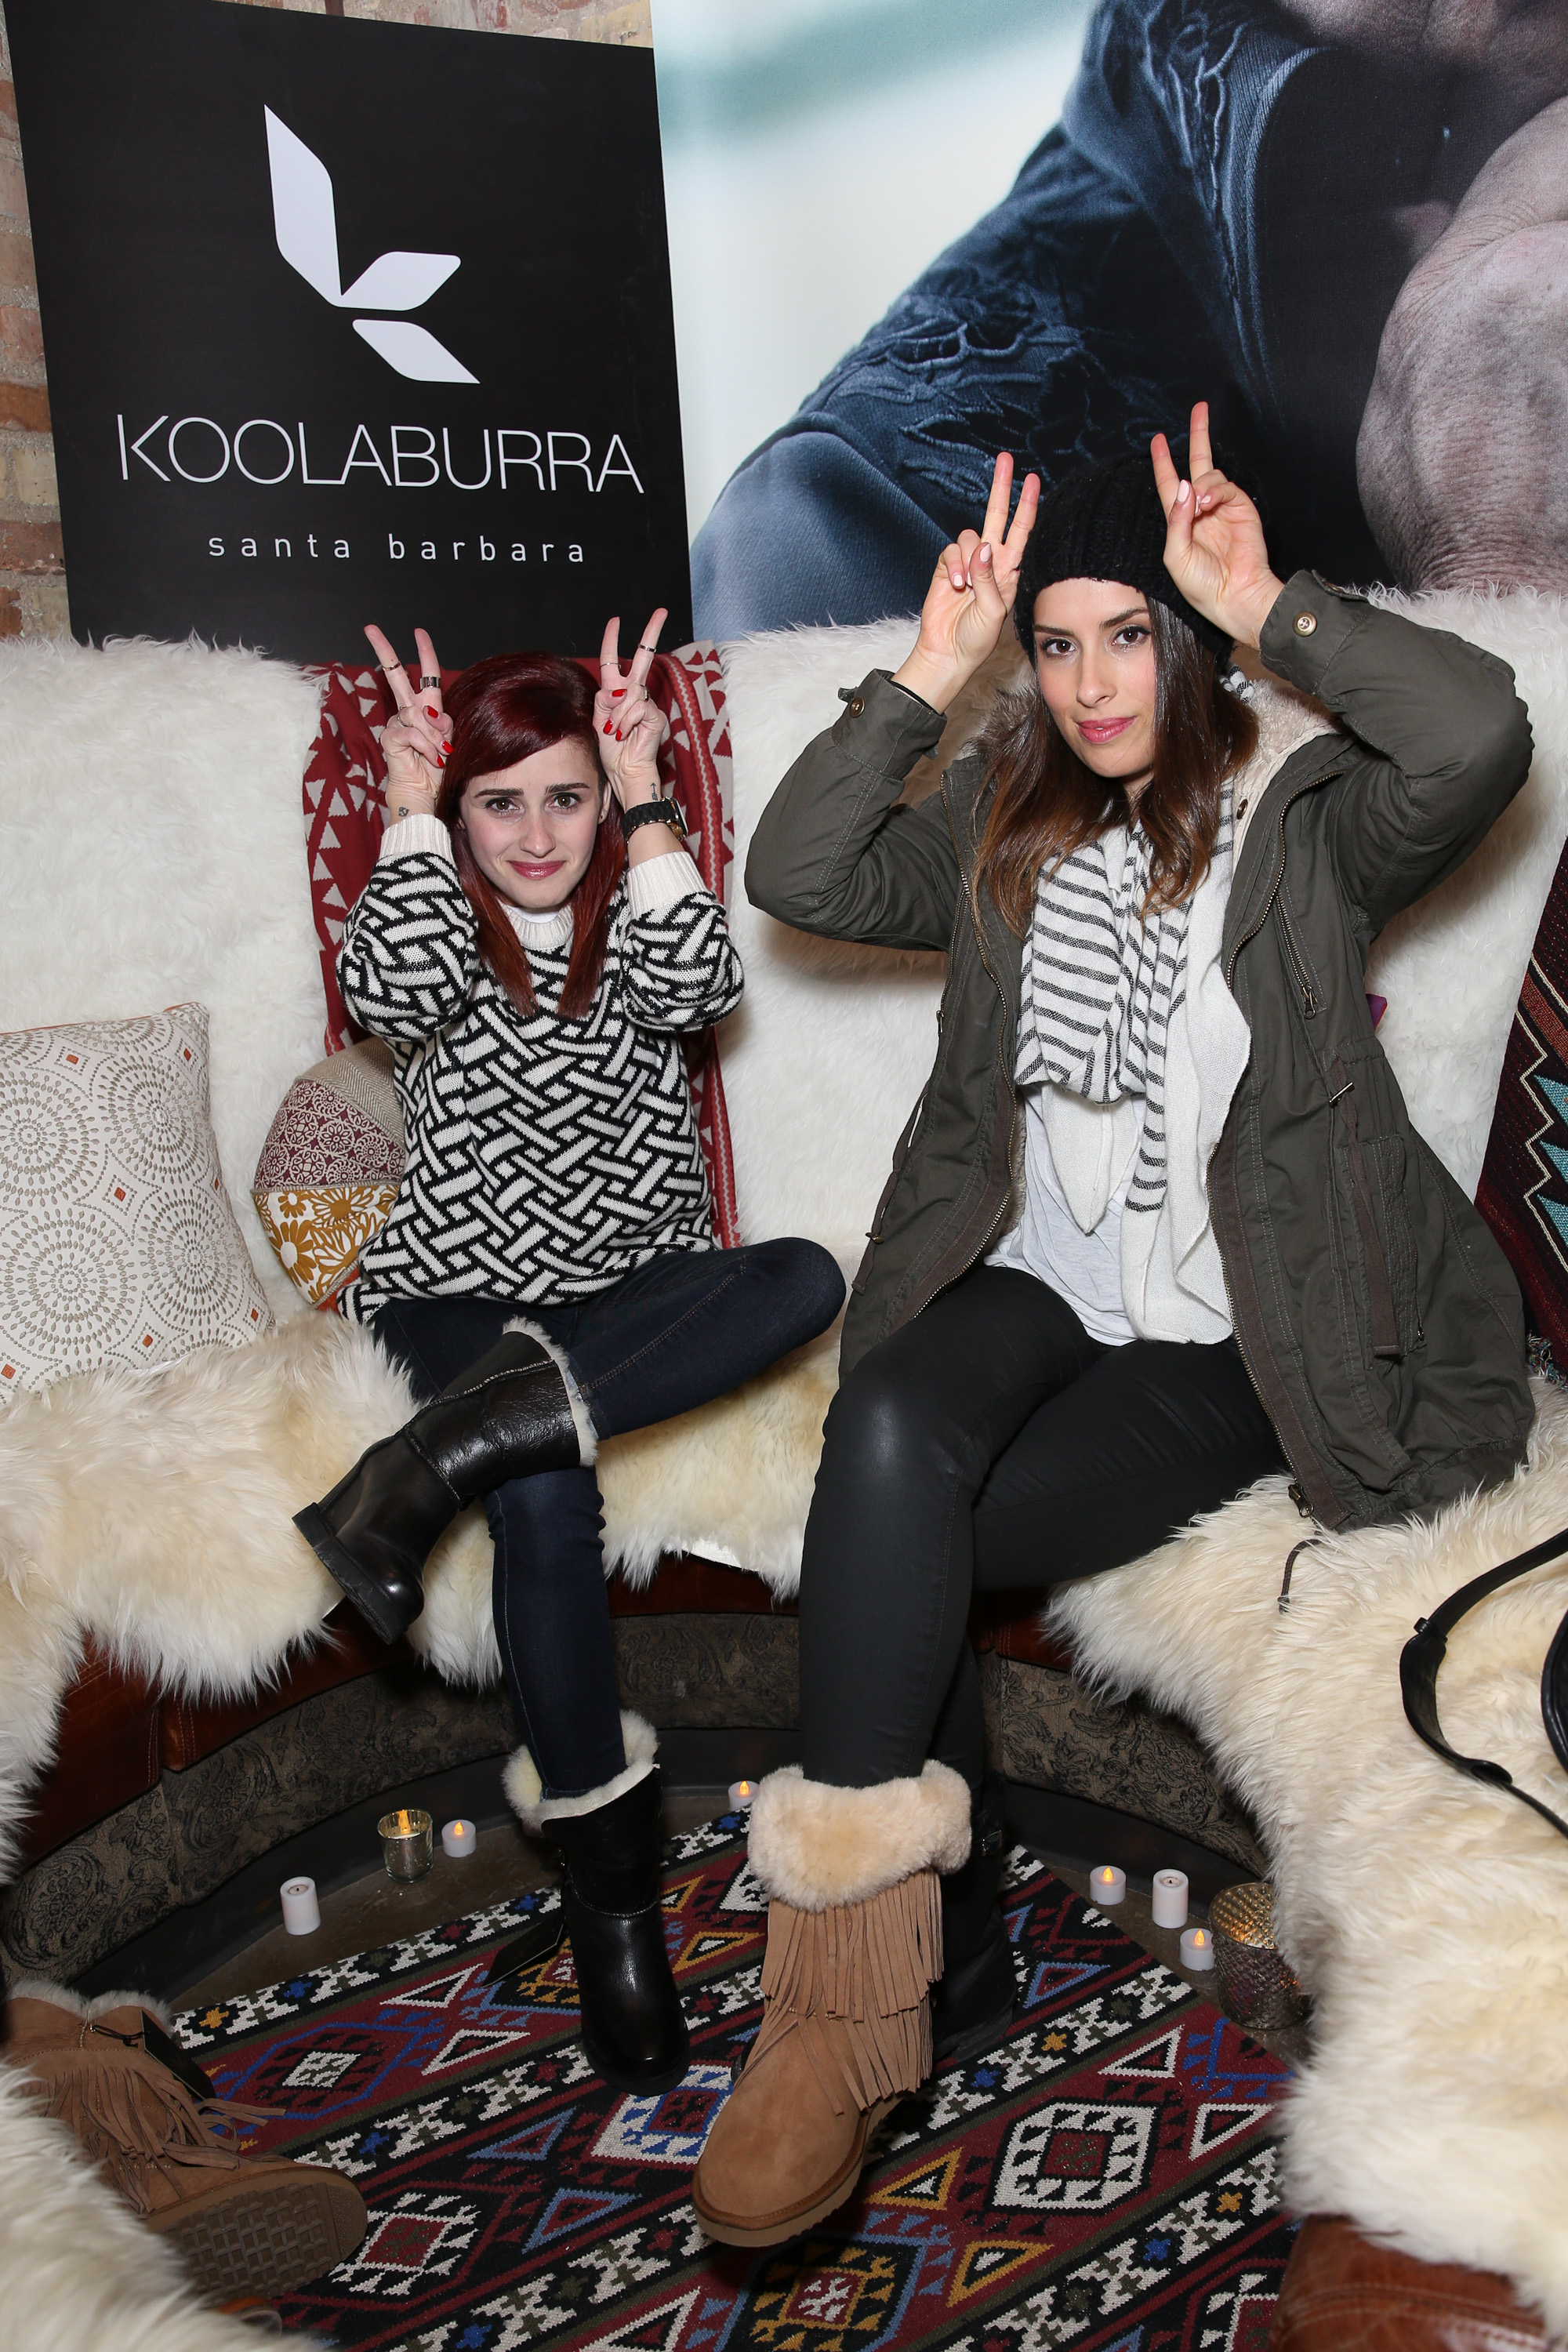 koolaburra shows off their boots at sundance lalascoop